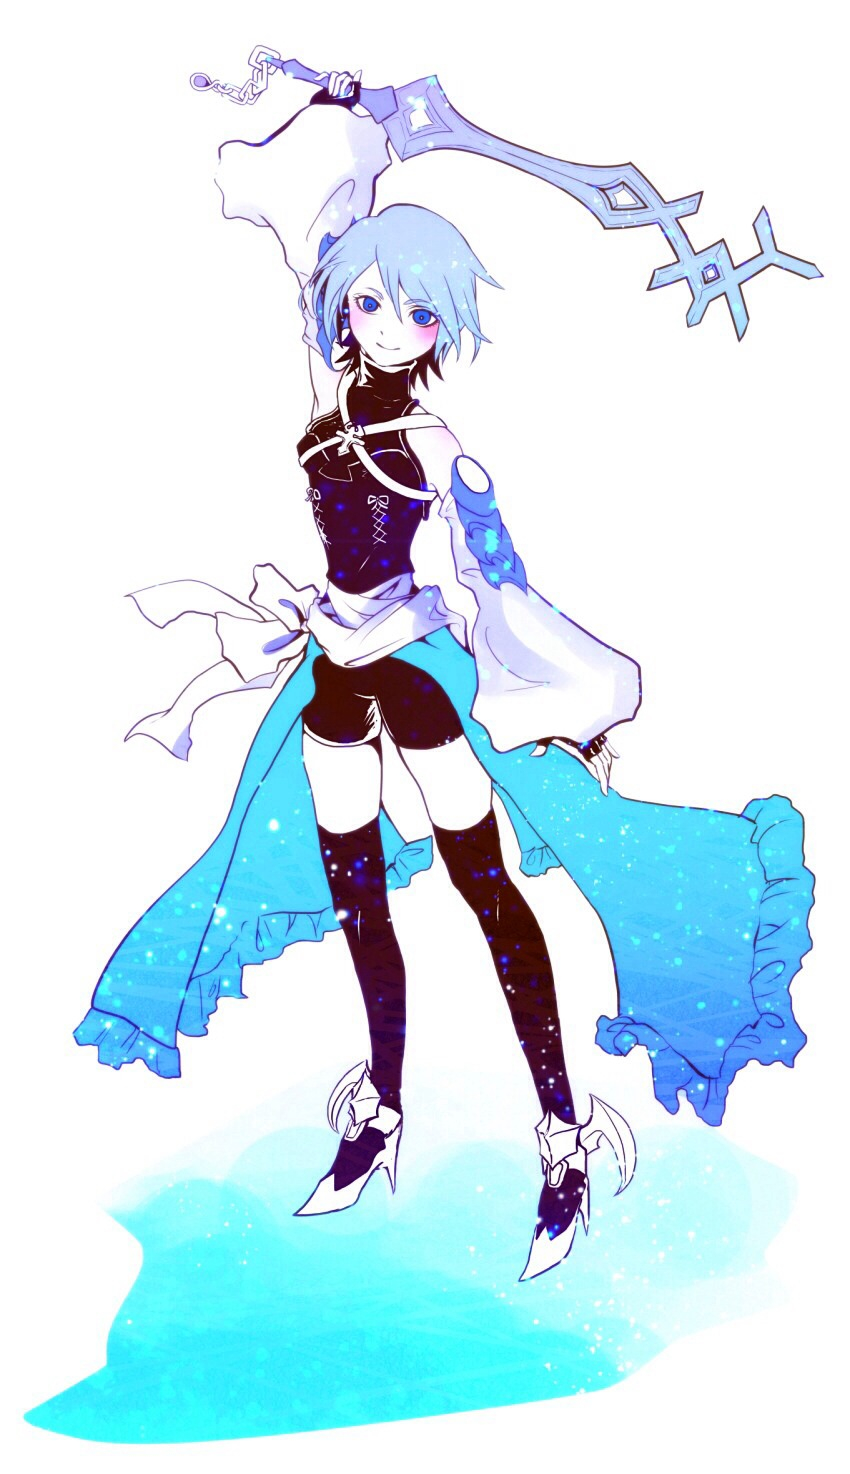 Aqua-from-Kingdom-Hearts-I-love-her-Shes-freakin-awesome-wallpaper-wp4603718